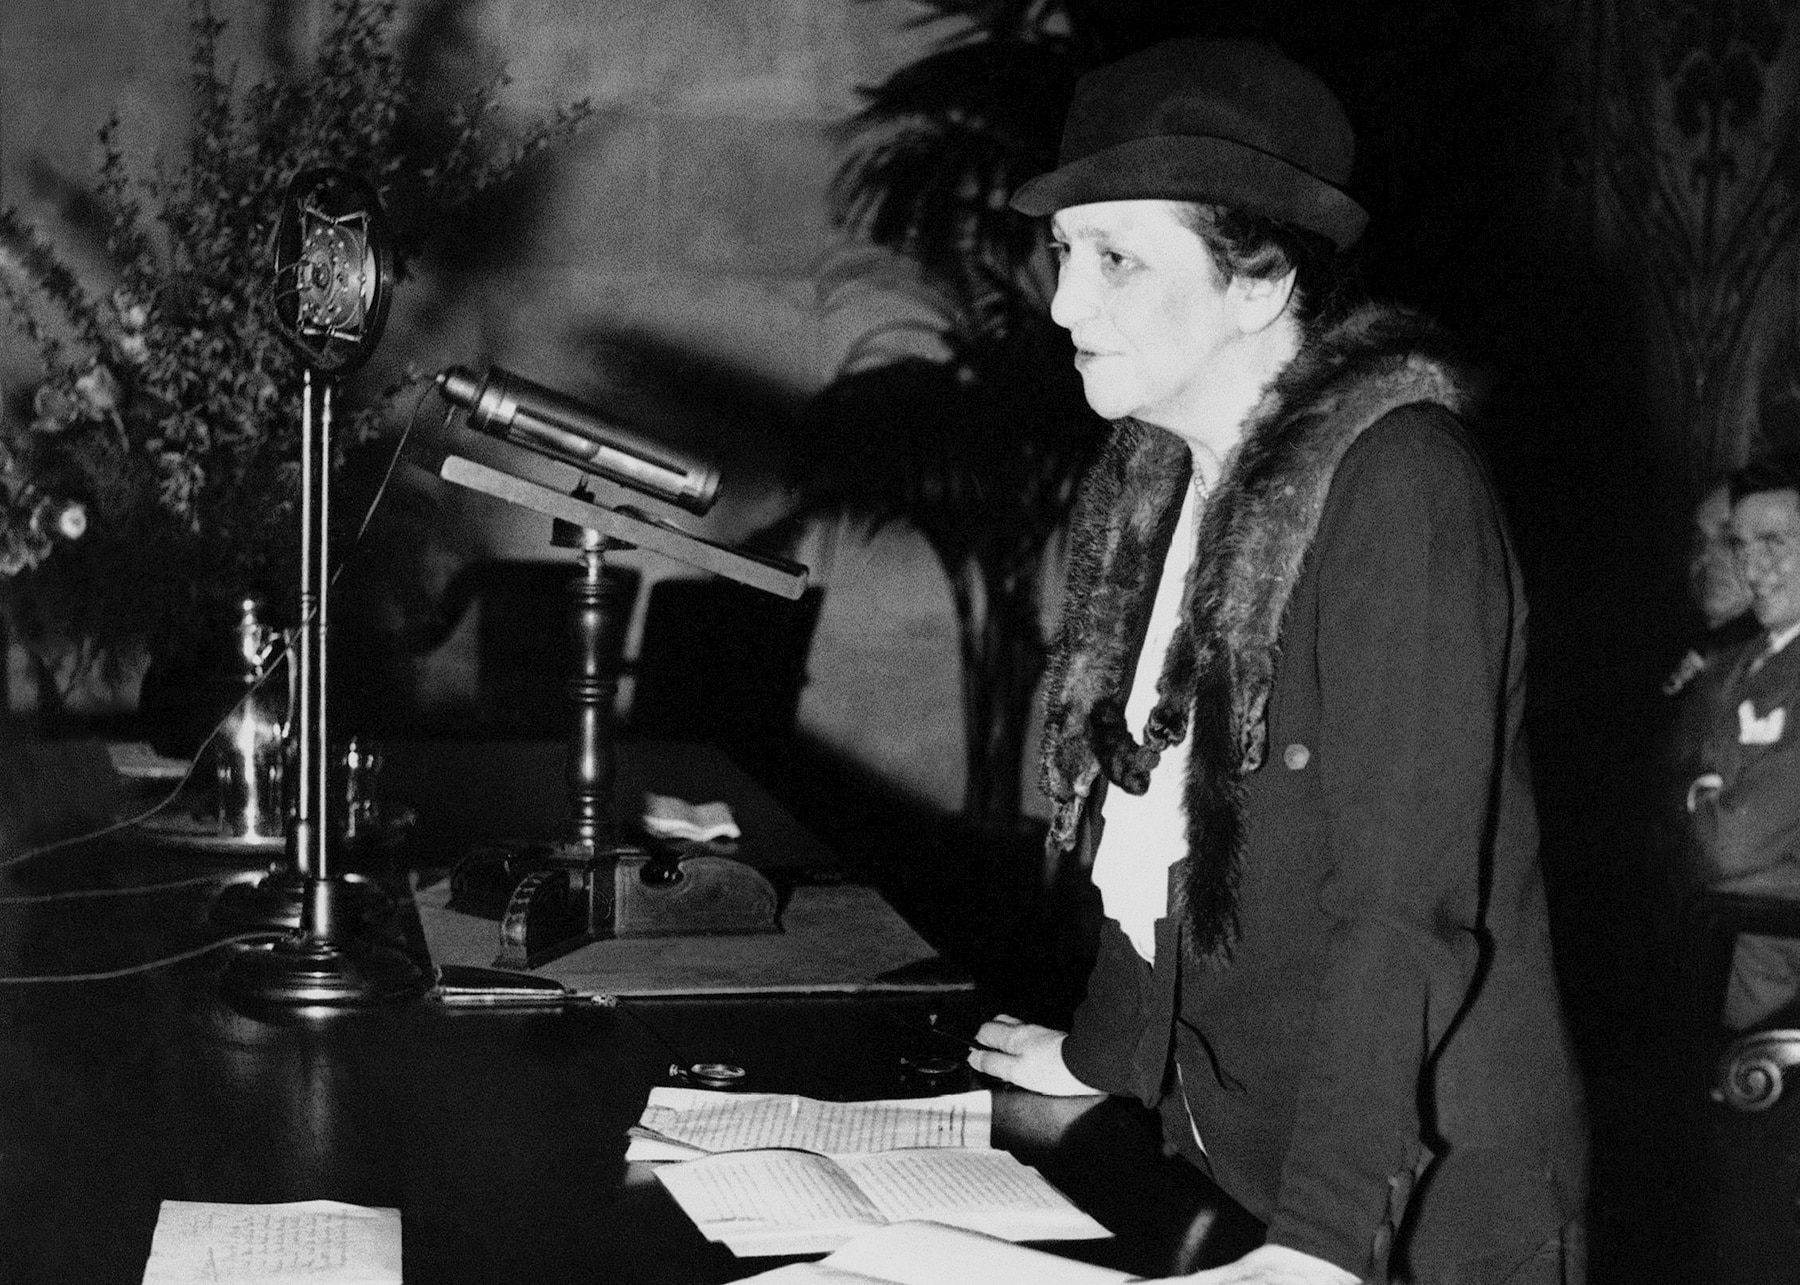 France Perkins standing at desk with microphones (© AP Images)